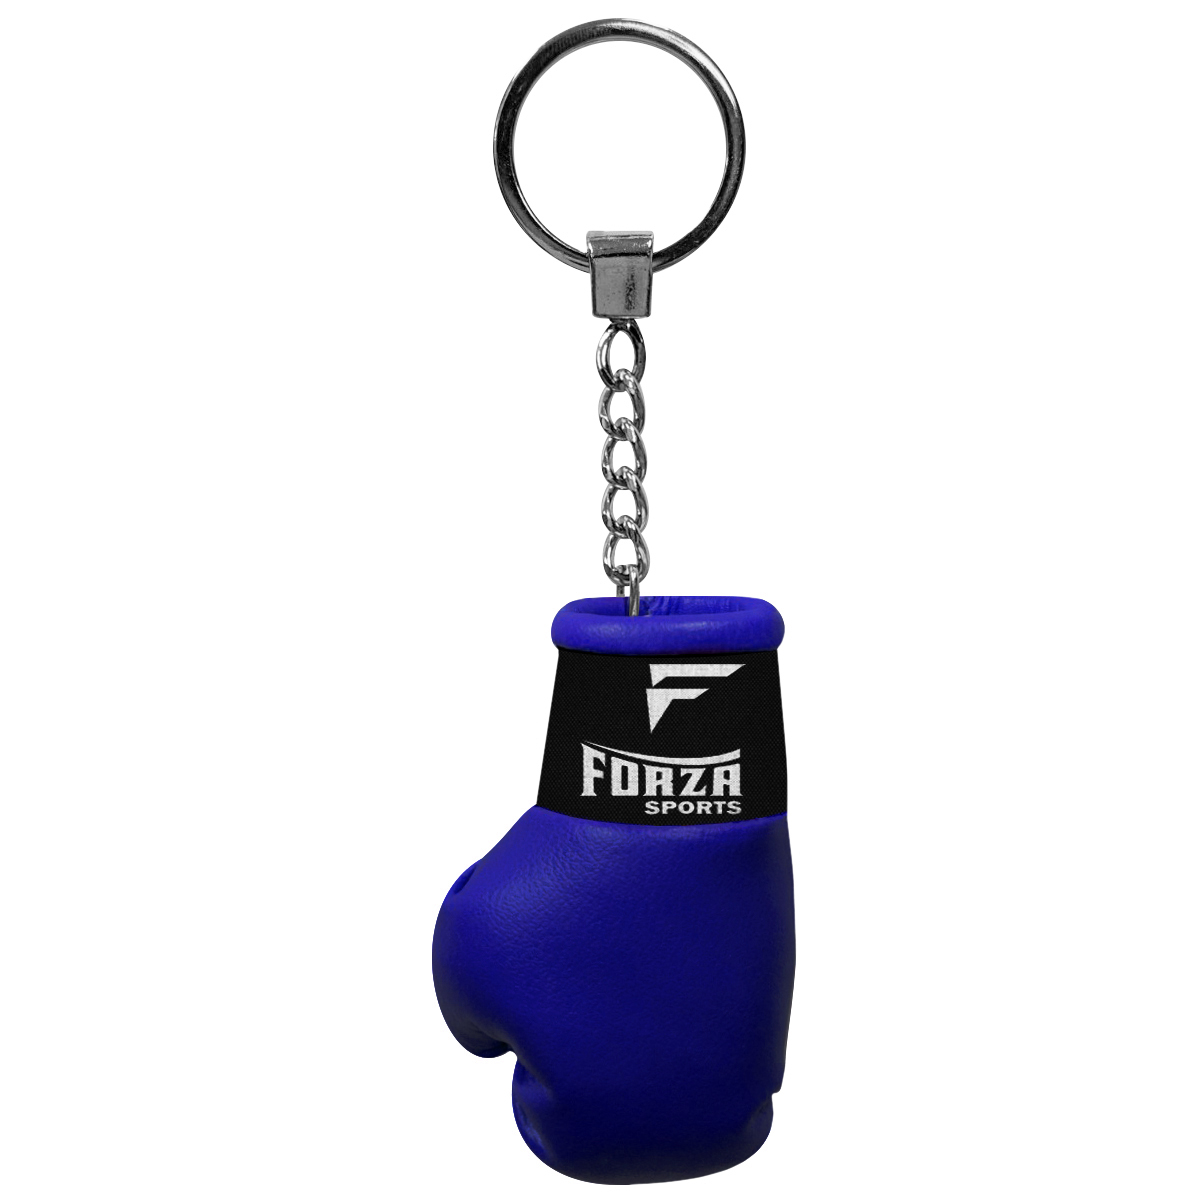 Cleto-Reyes-Traditional-Lace-Up-Boxing-Gloves-with-Forza-Handwraps-and-Keychain thumbnail 5